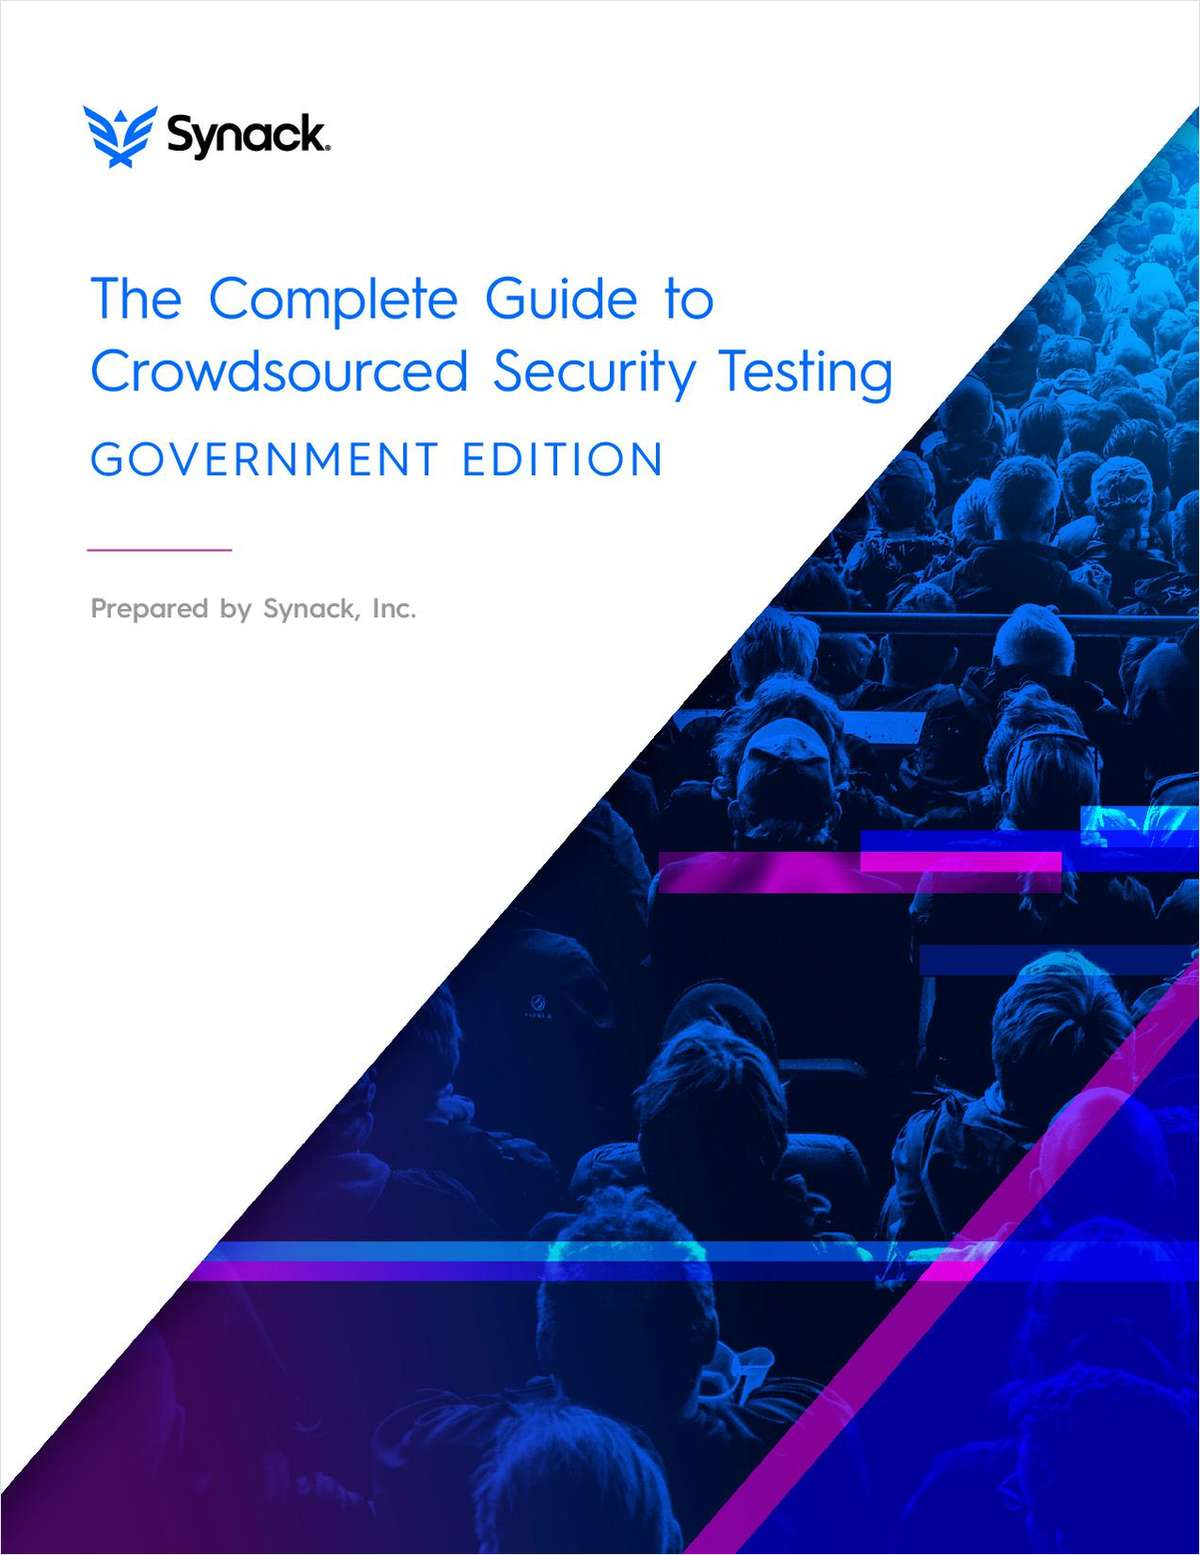 The Complete Guide to Crowdsourced Security Testing: Government Edition